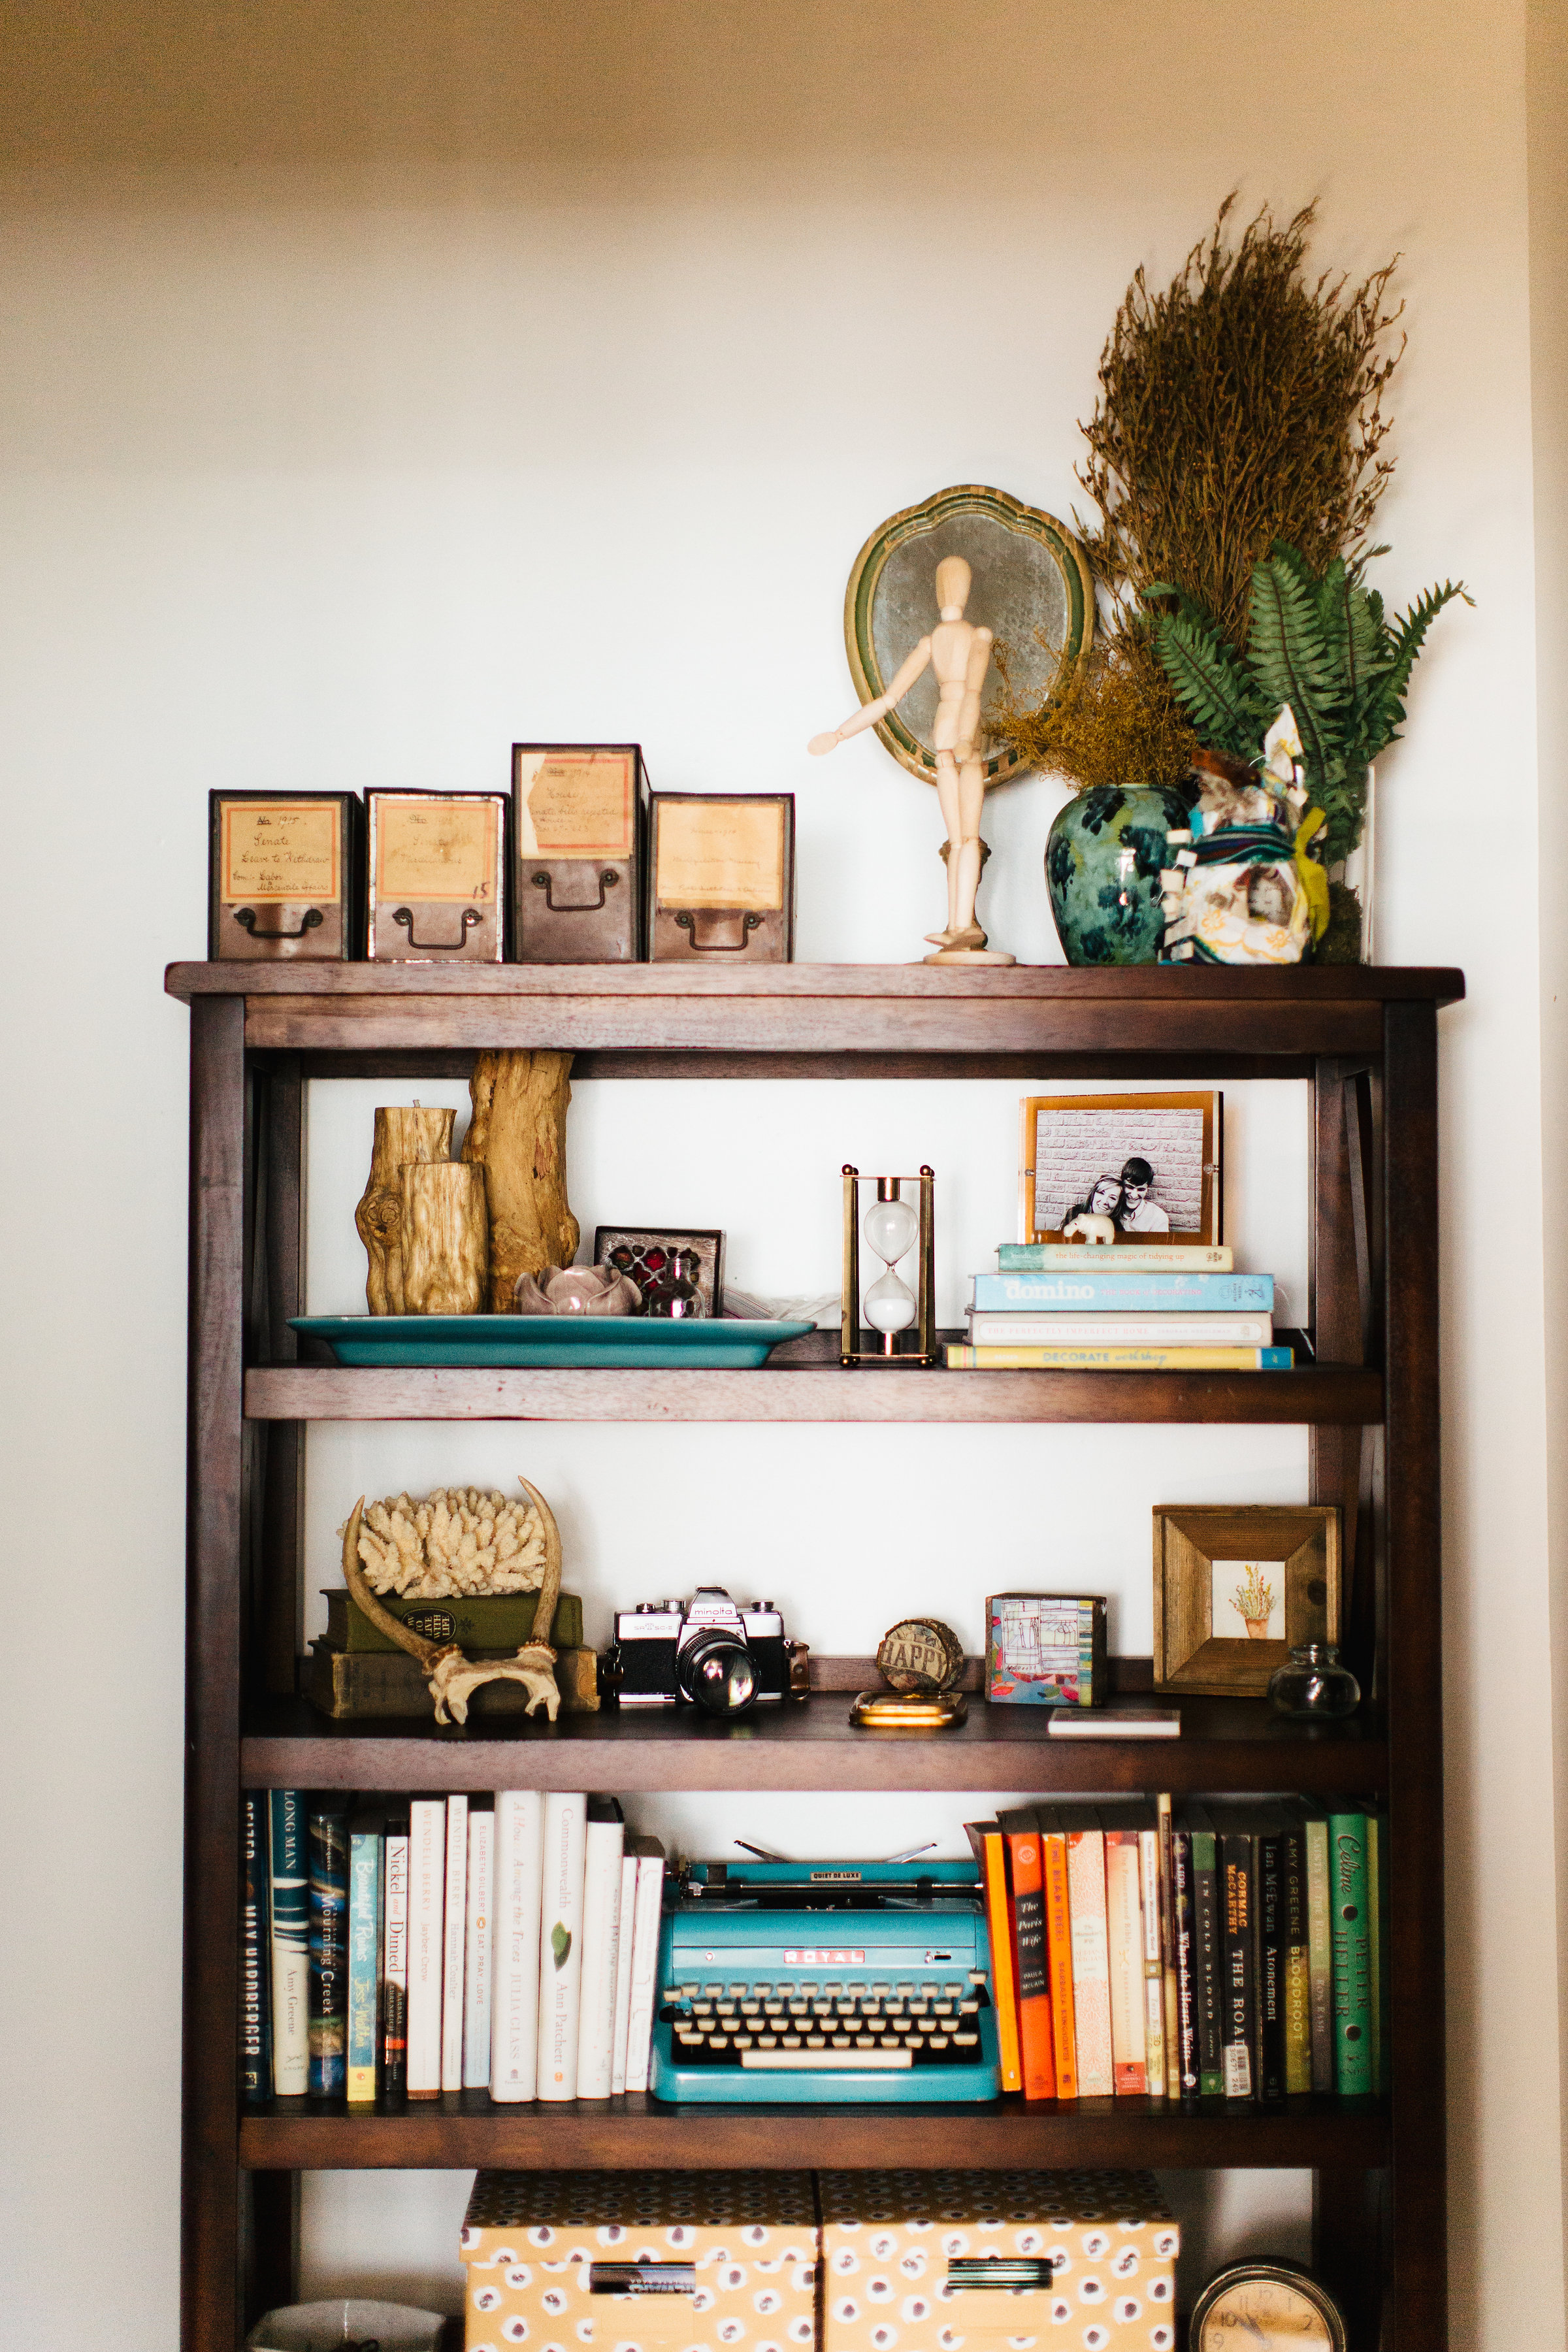 Bookshelf of collected treasures, photo by Texture Photo.